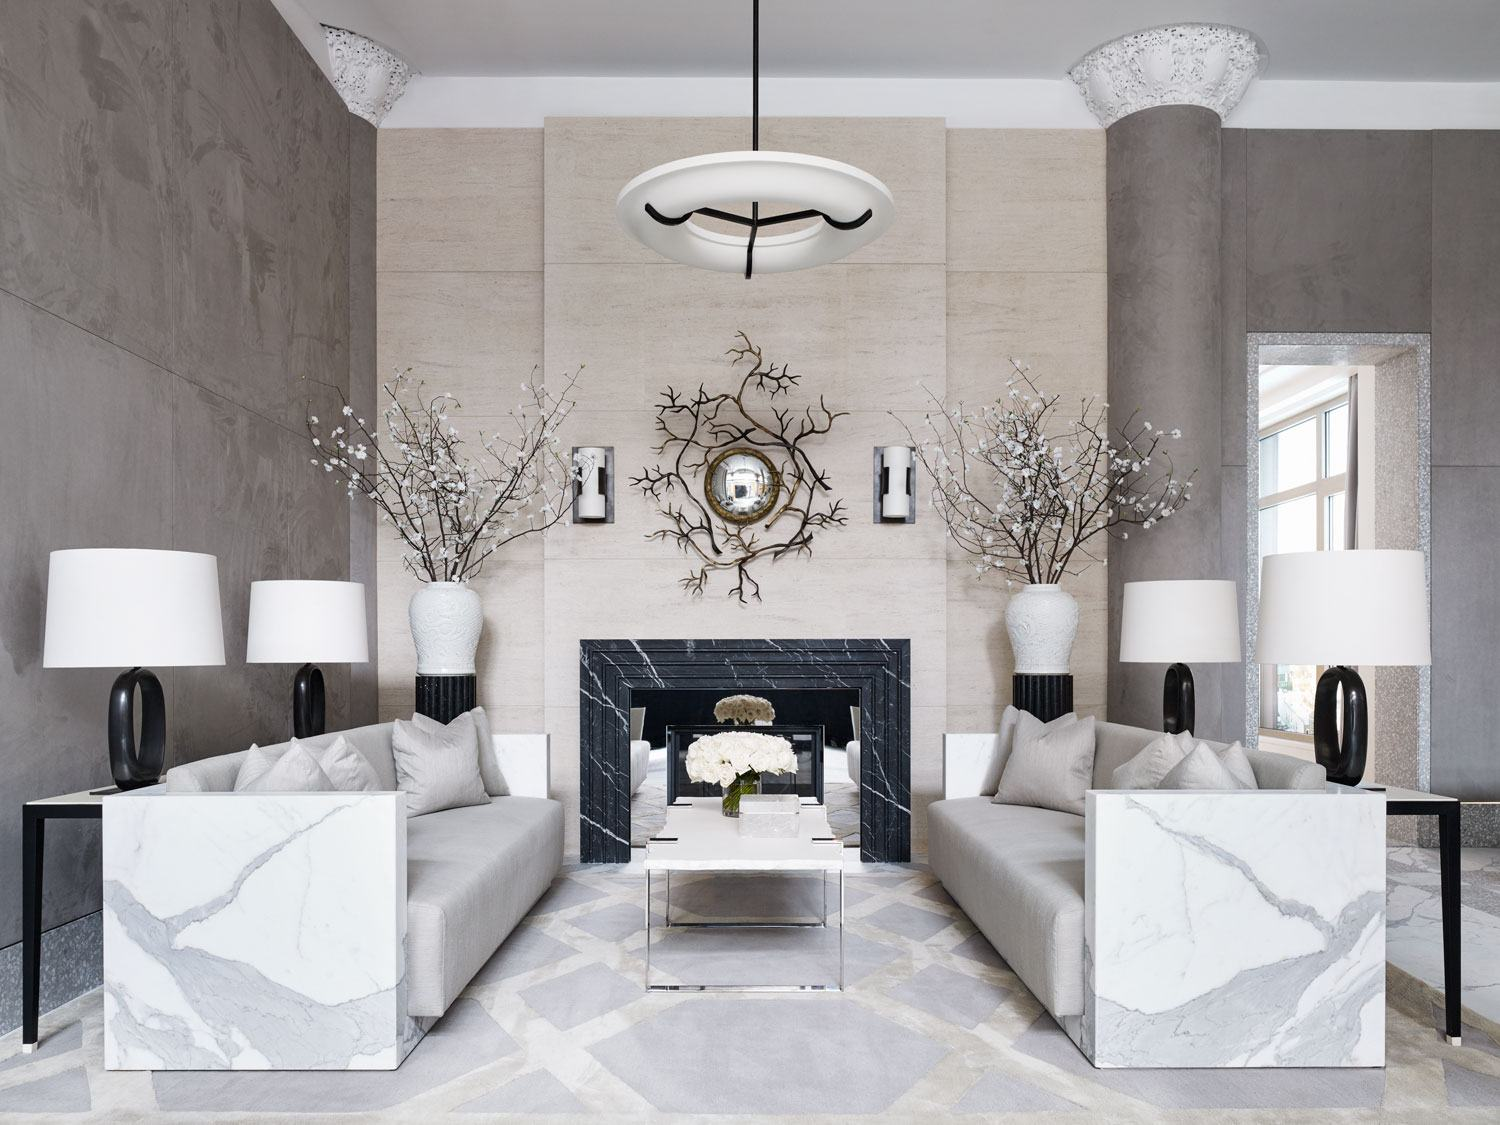 This living room designed by Ryan Korban is filled to the brim with marble. The Statuary marble sofas beautifully contrast hard and soft elements.